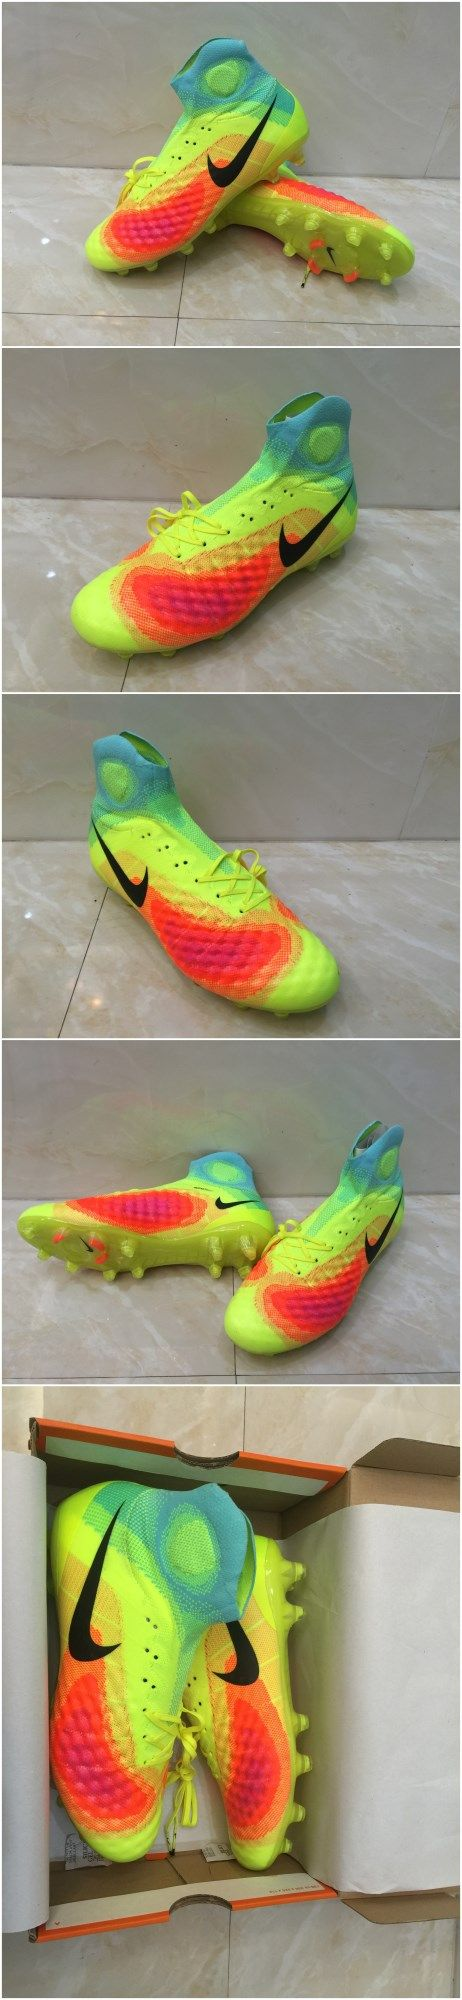 Free shipping fee , 2016 Top football boots , Nike Magista Obra II FG -  VoltBlackTotal